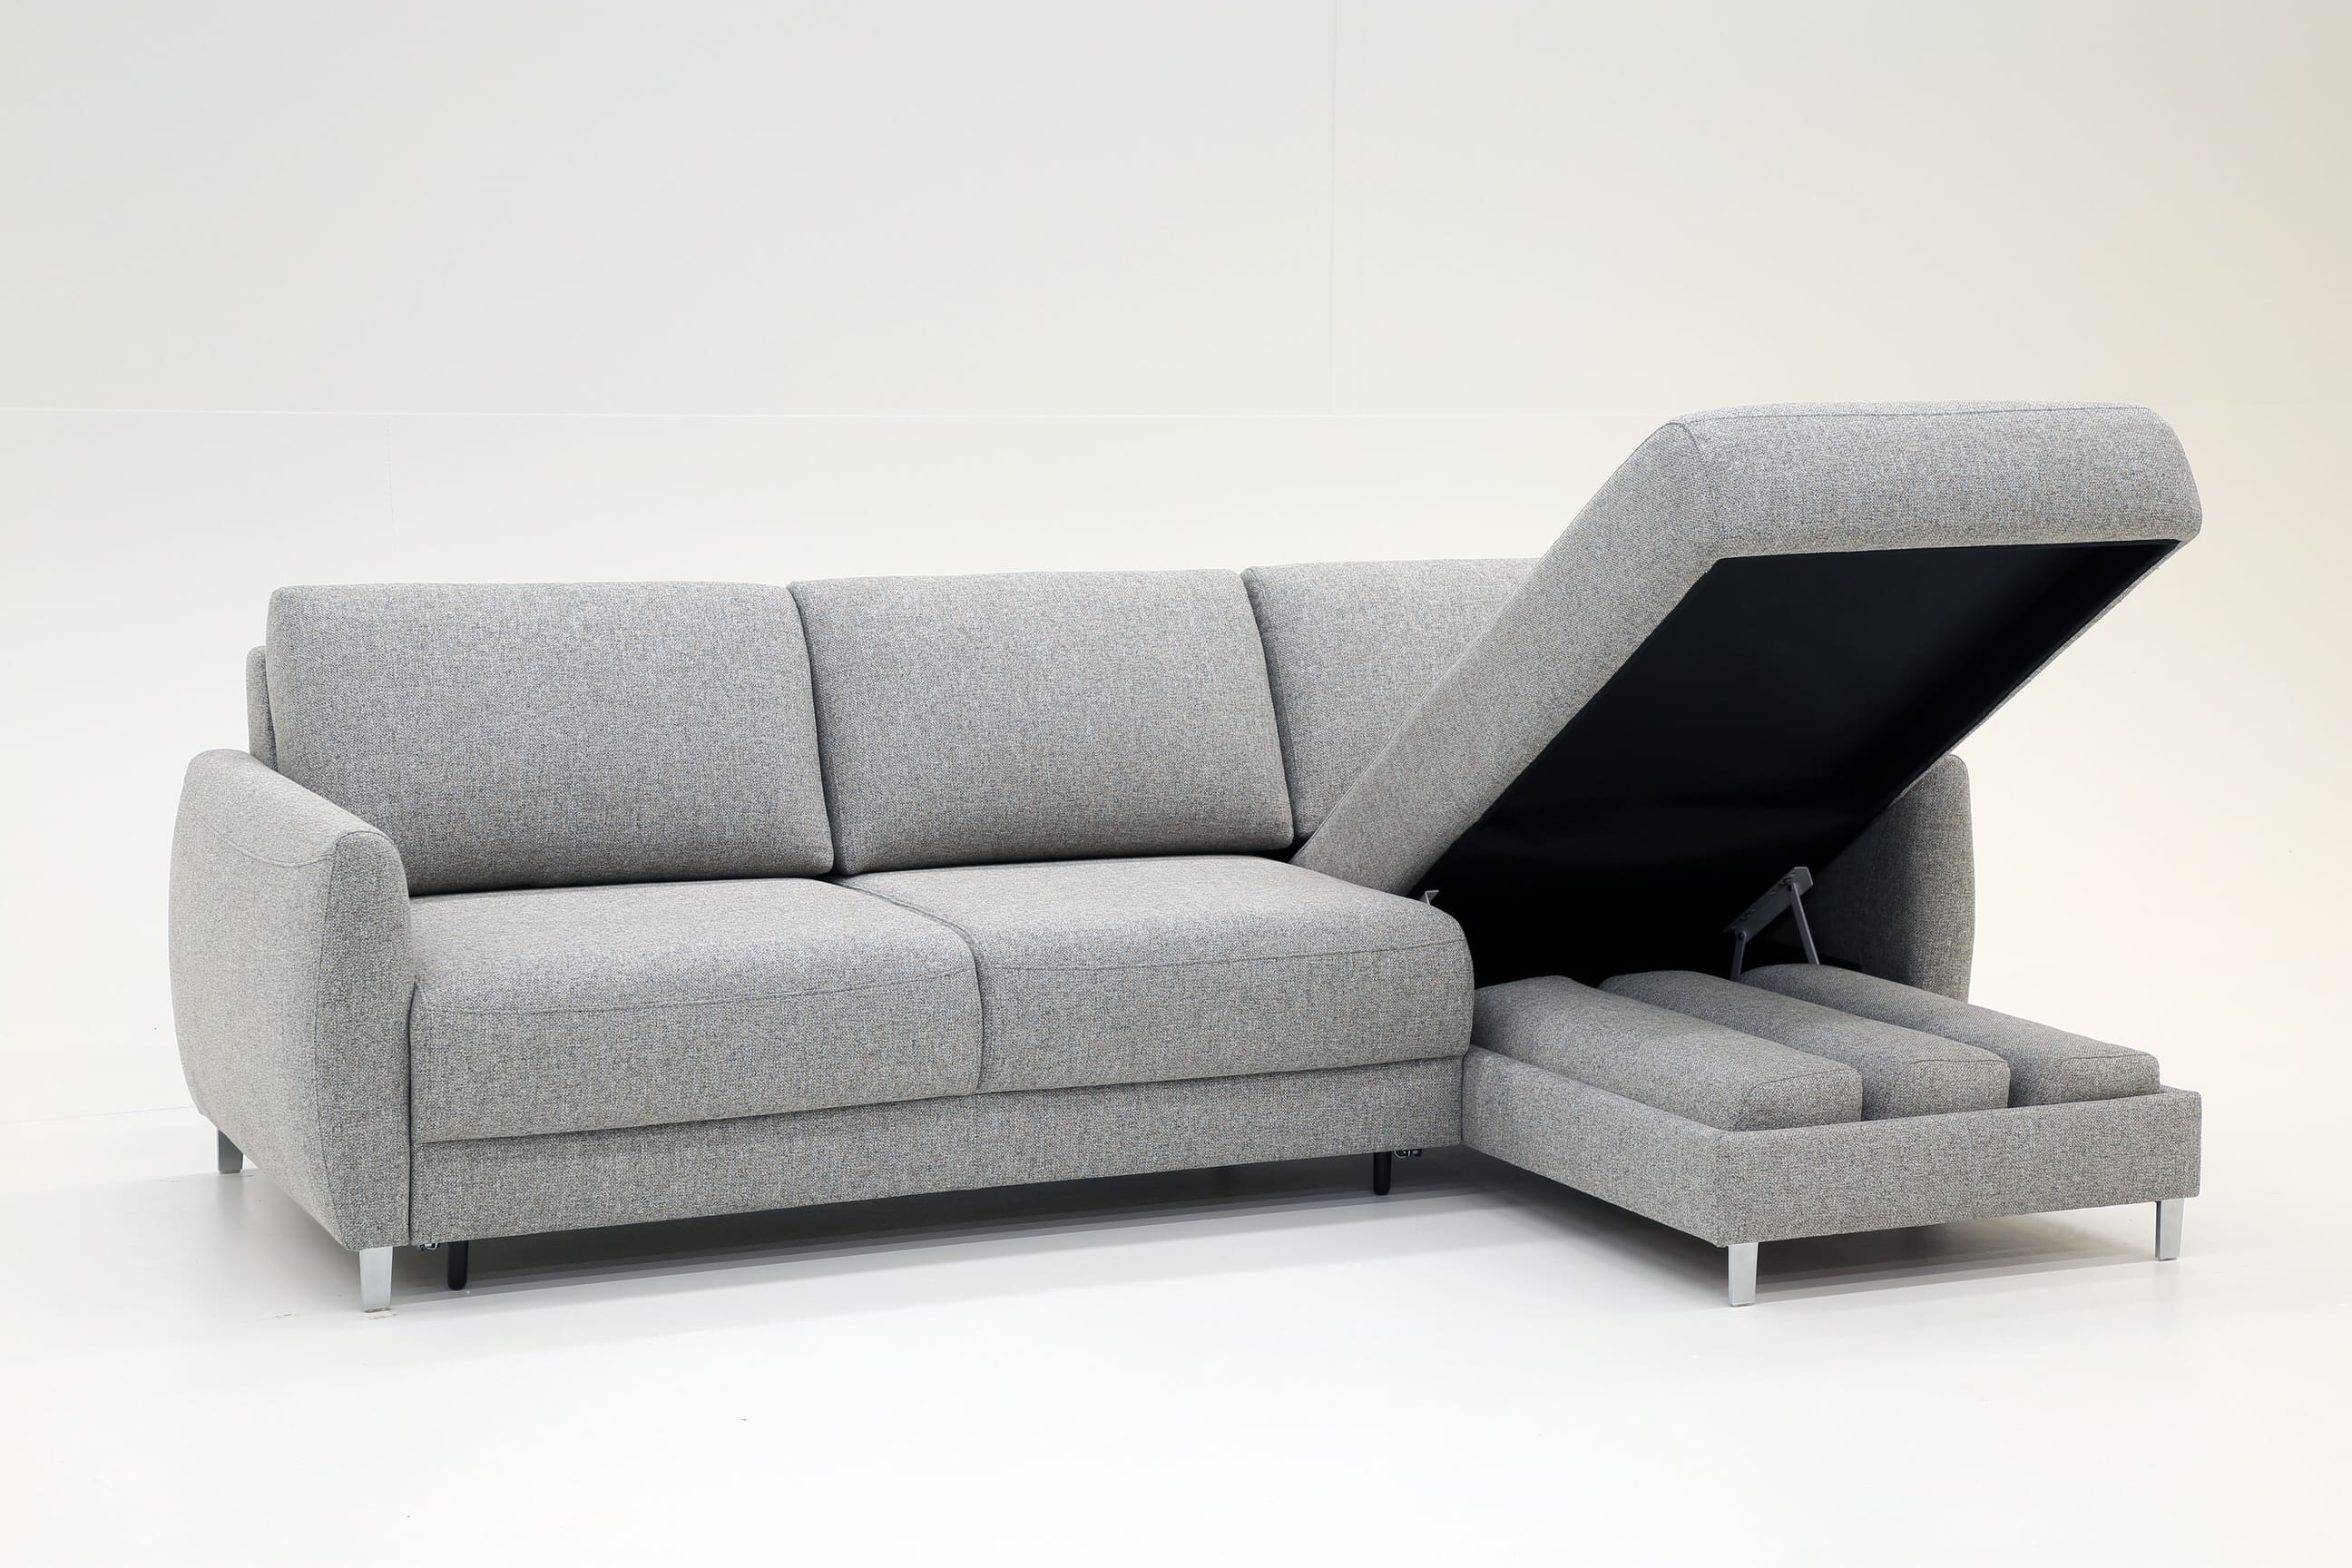 Delta Sectional Sofa Sleeper RHF by Luonto Furniture